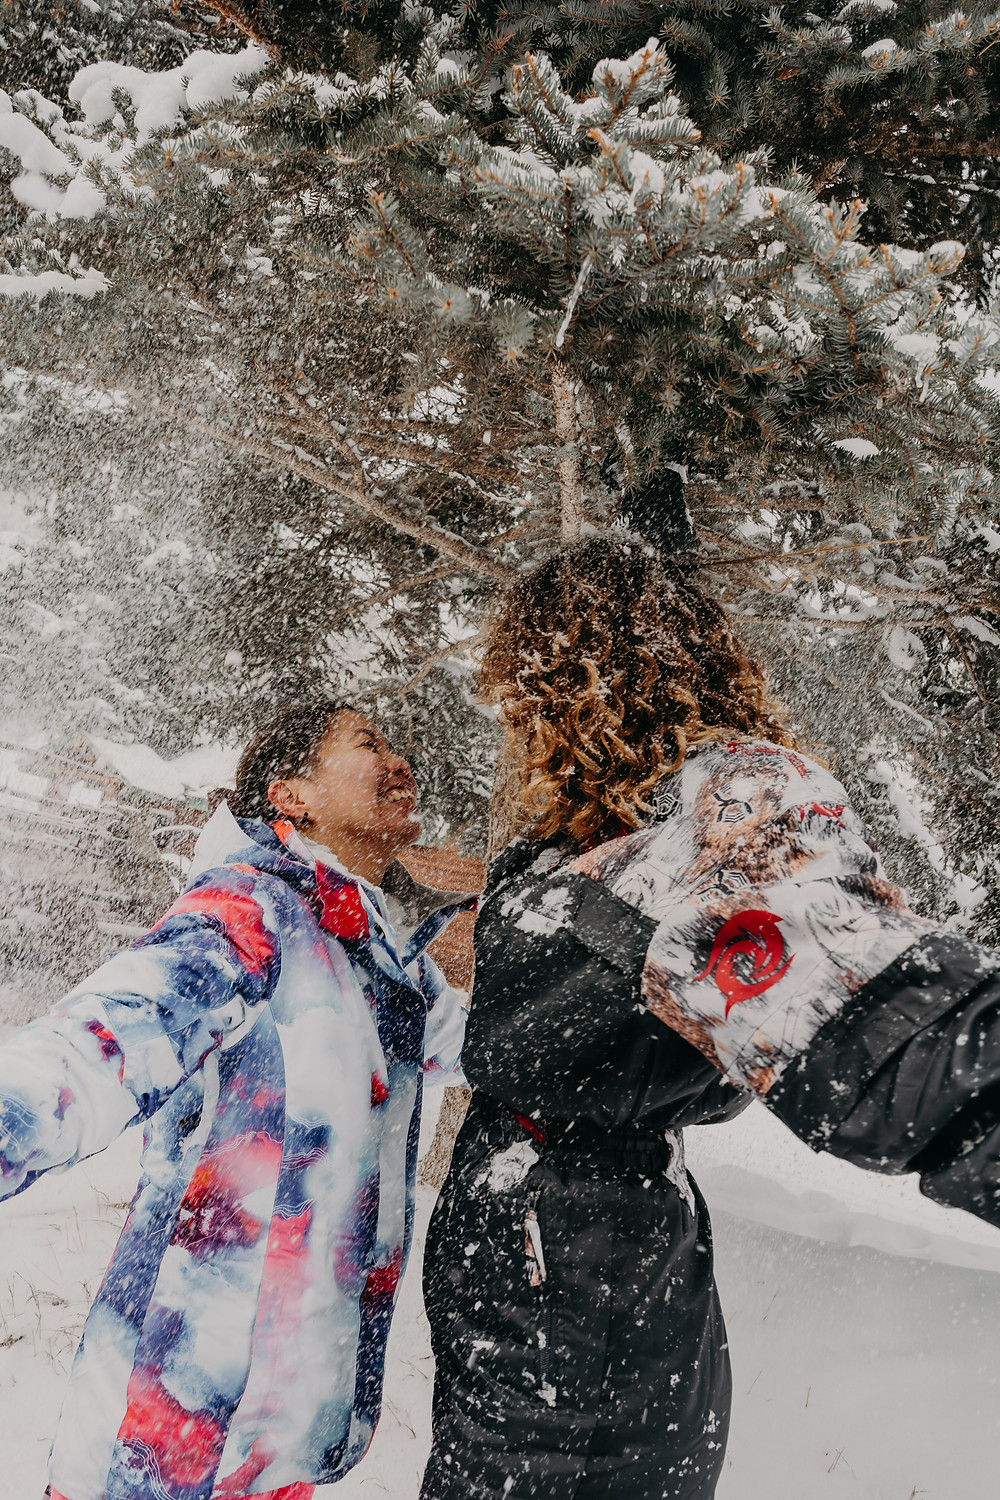 LGBTQI+ couple session in the snow